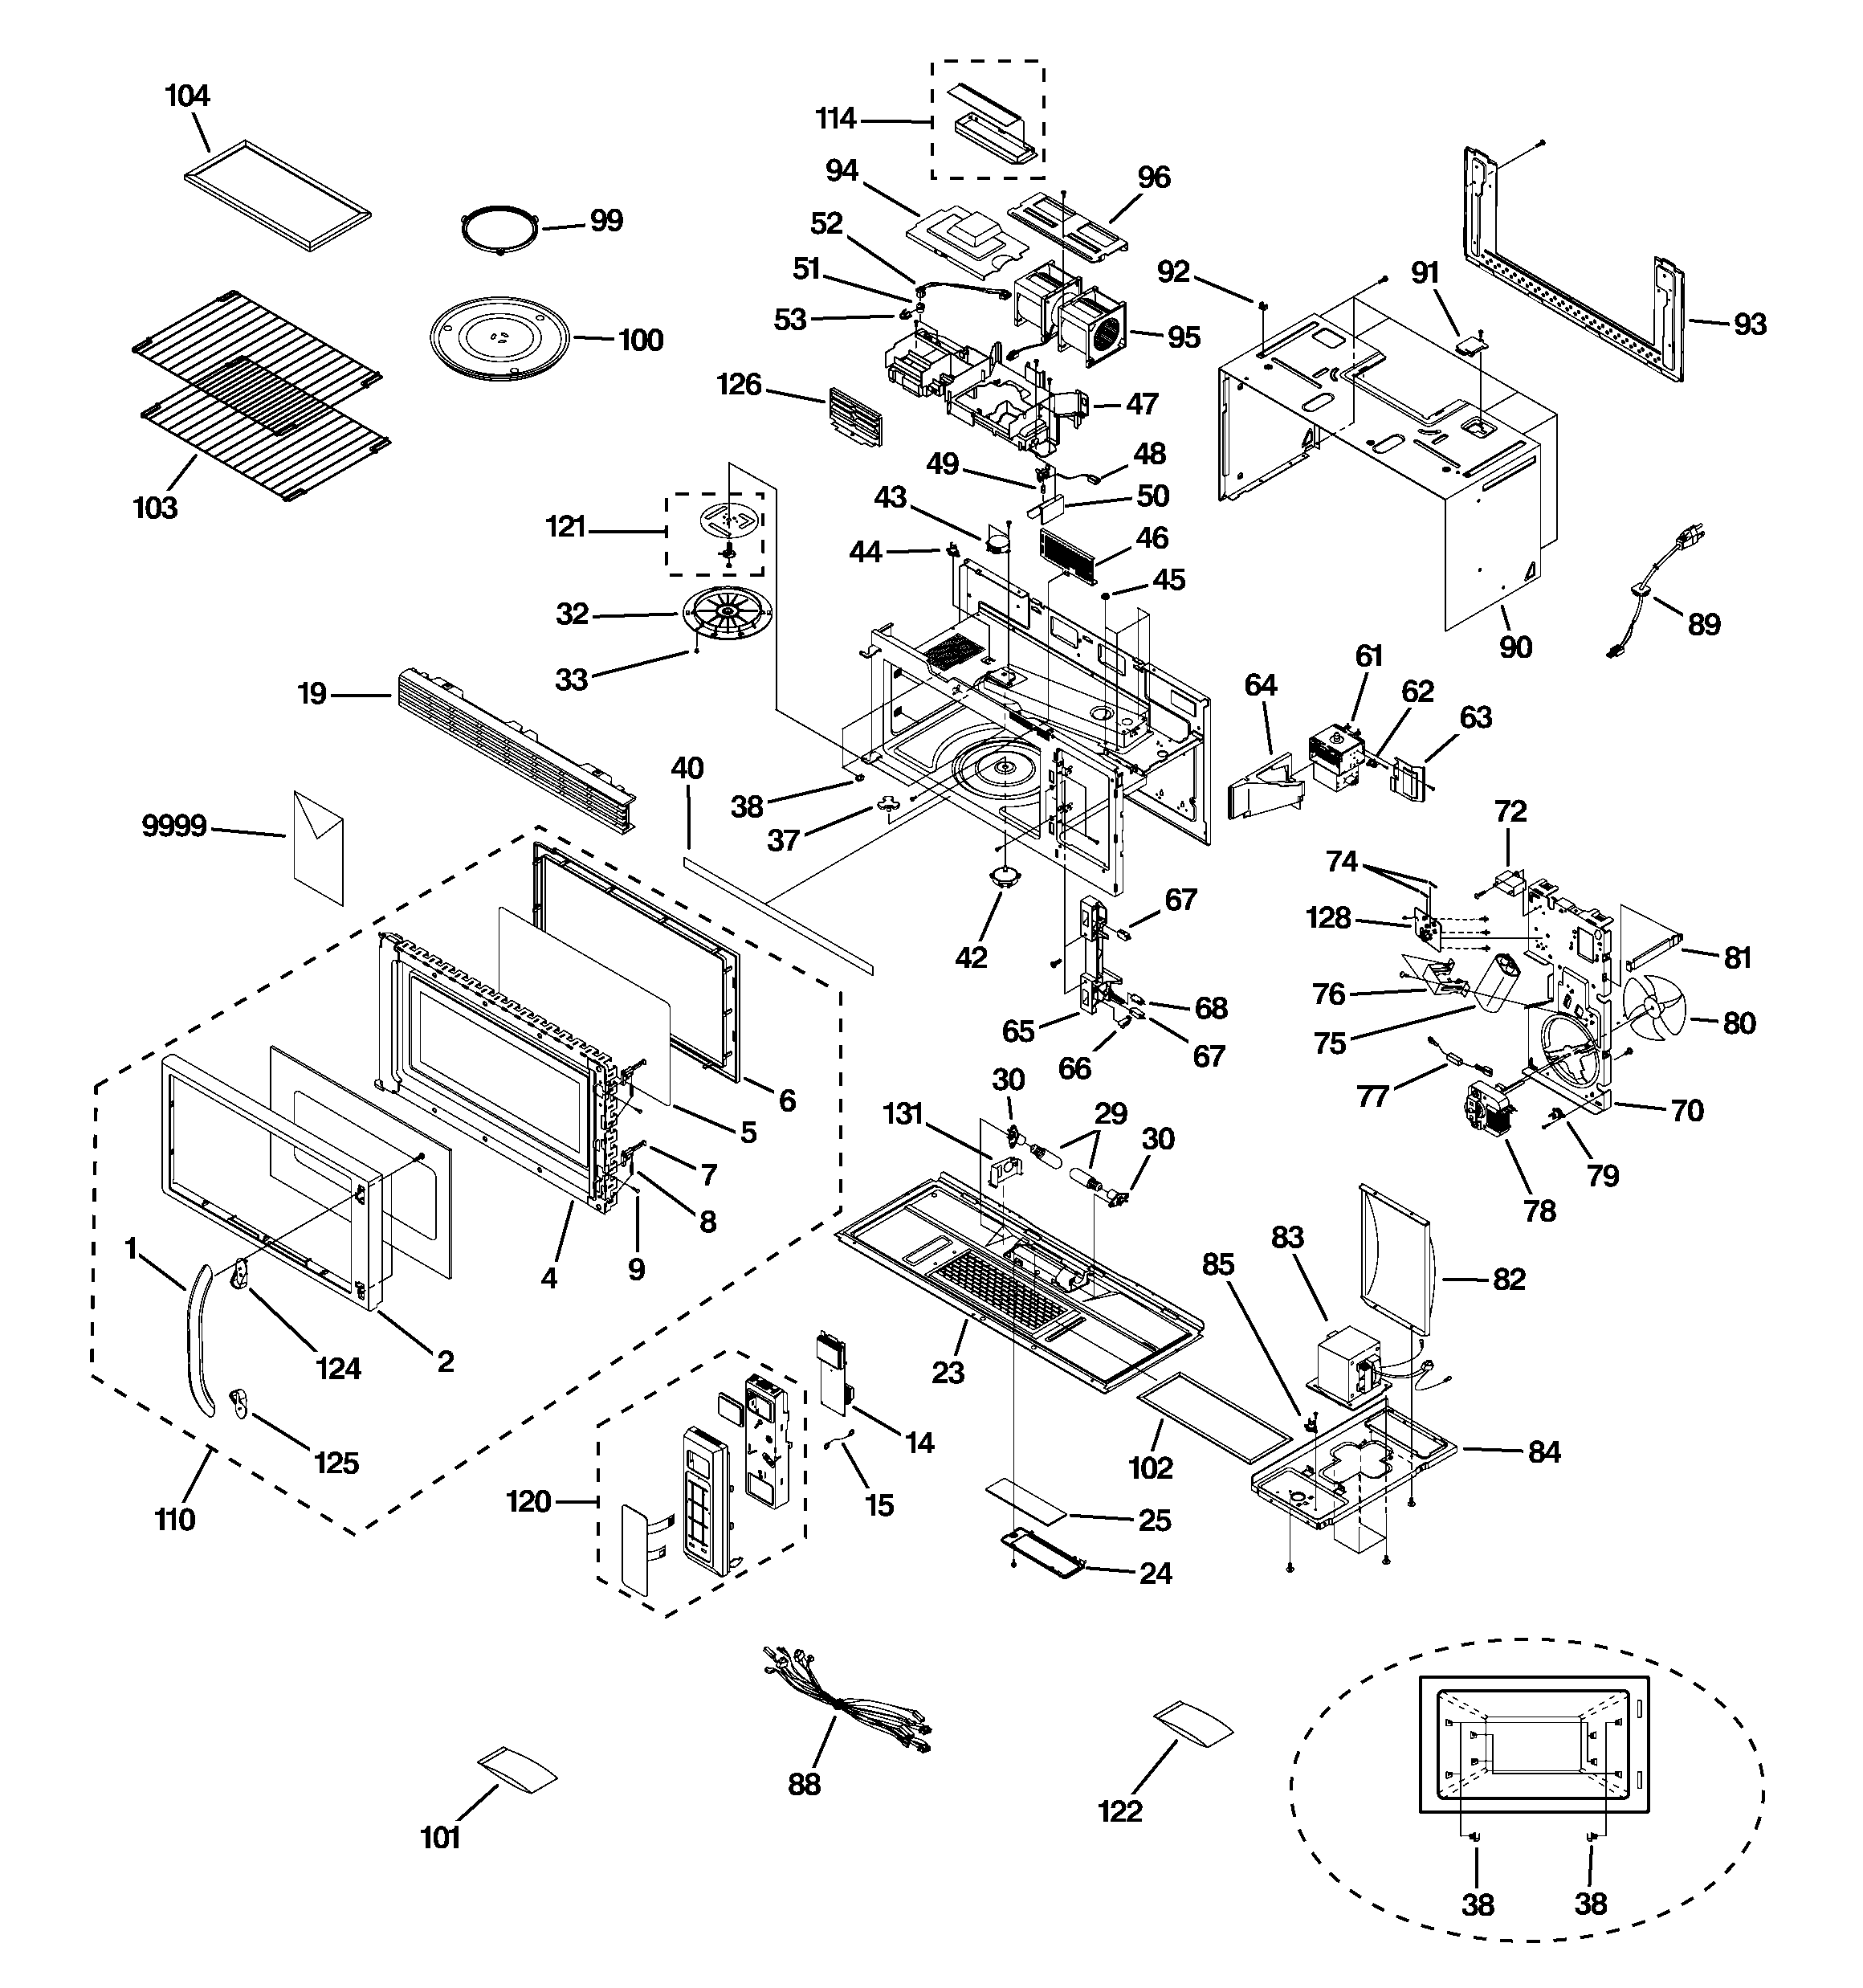 G0604228 00001?resize\\\\\\\\\\\\\\\\\\\\\\\\\\\\\\\=665%2C709 wiring diagram for range hood fan nautilus range hood wiring  at virtualis.co